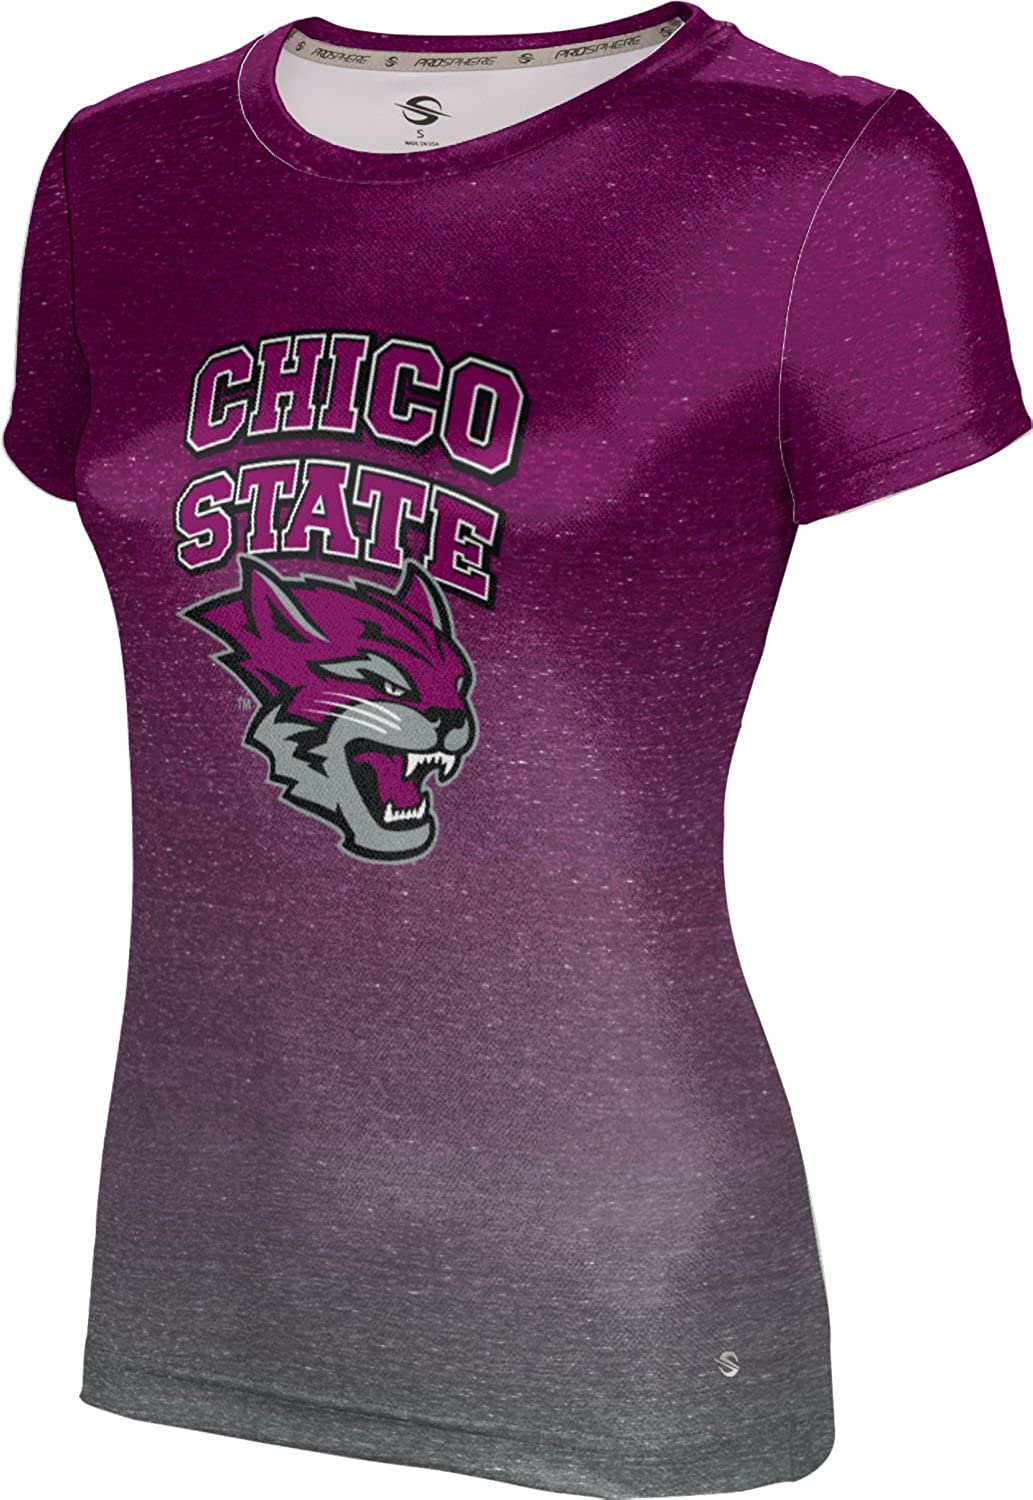 ProSphere California State University Chico Girls' Performance T-Shirt (Ombre)